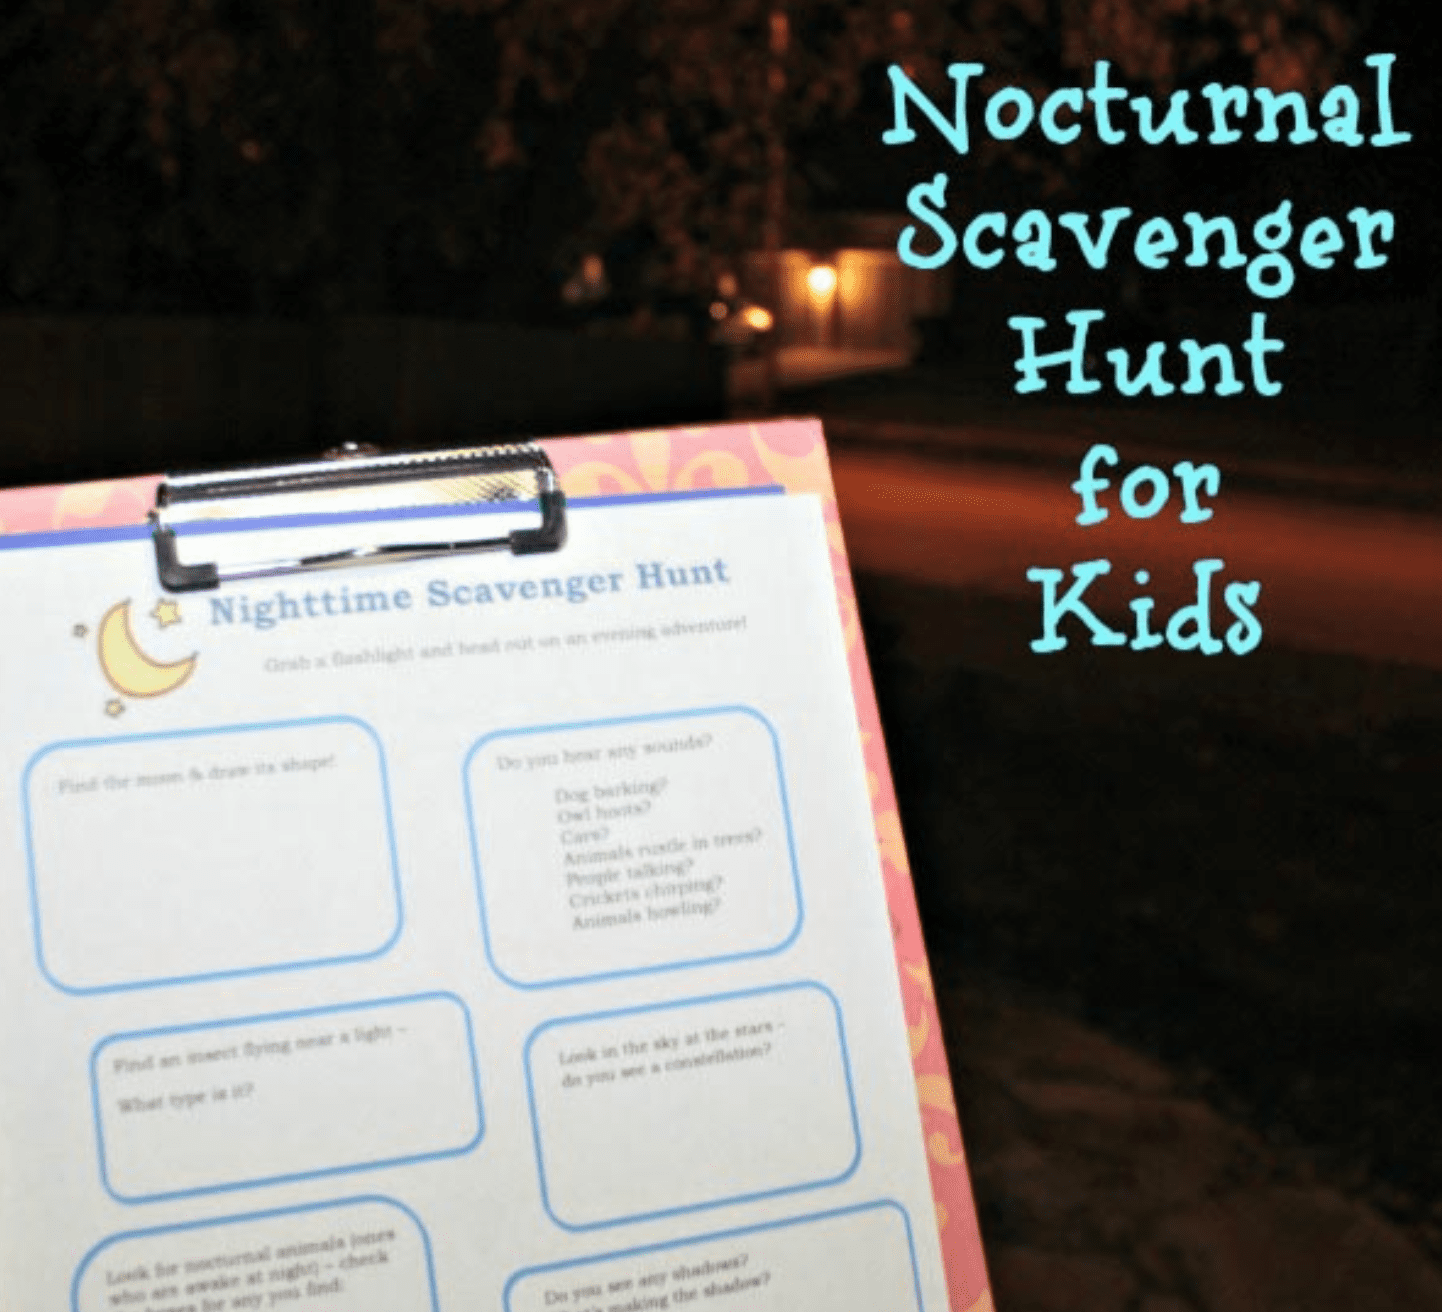 Edventures Nocturnal Scavenger Hunt for Kids